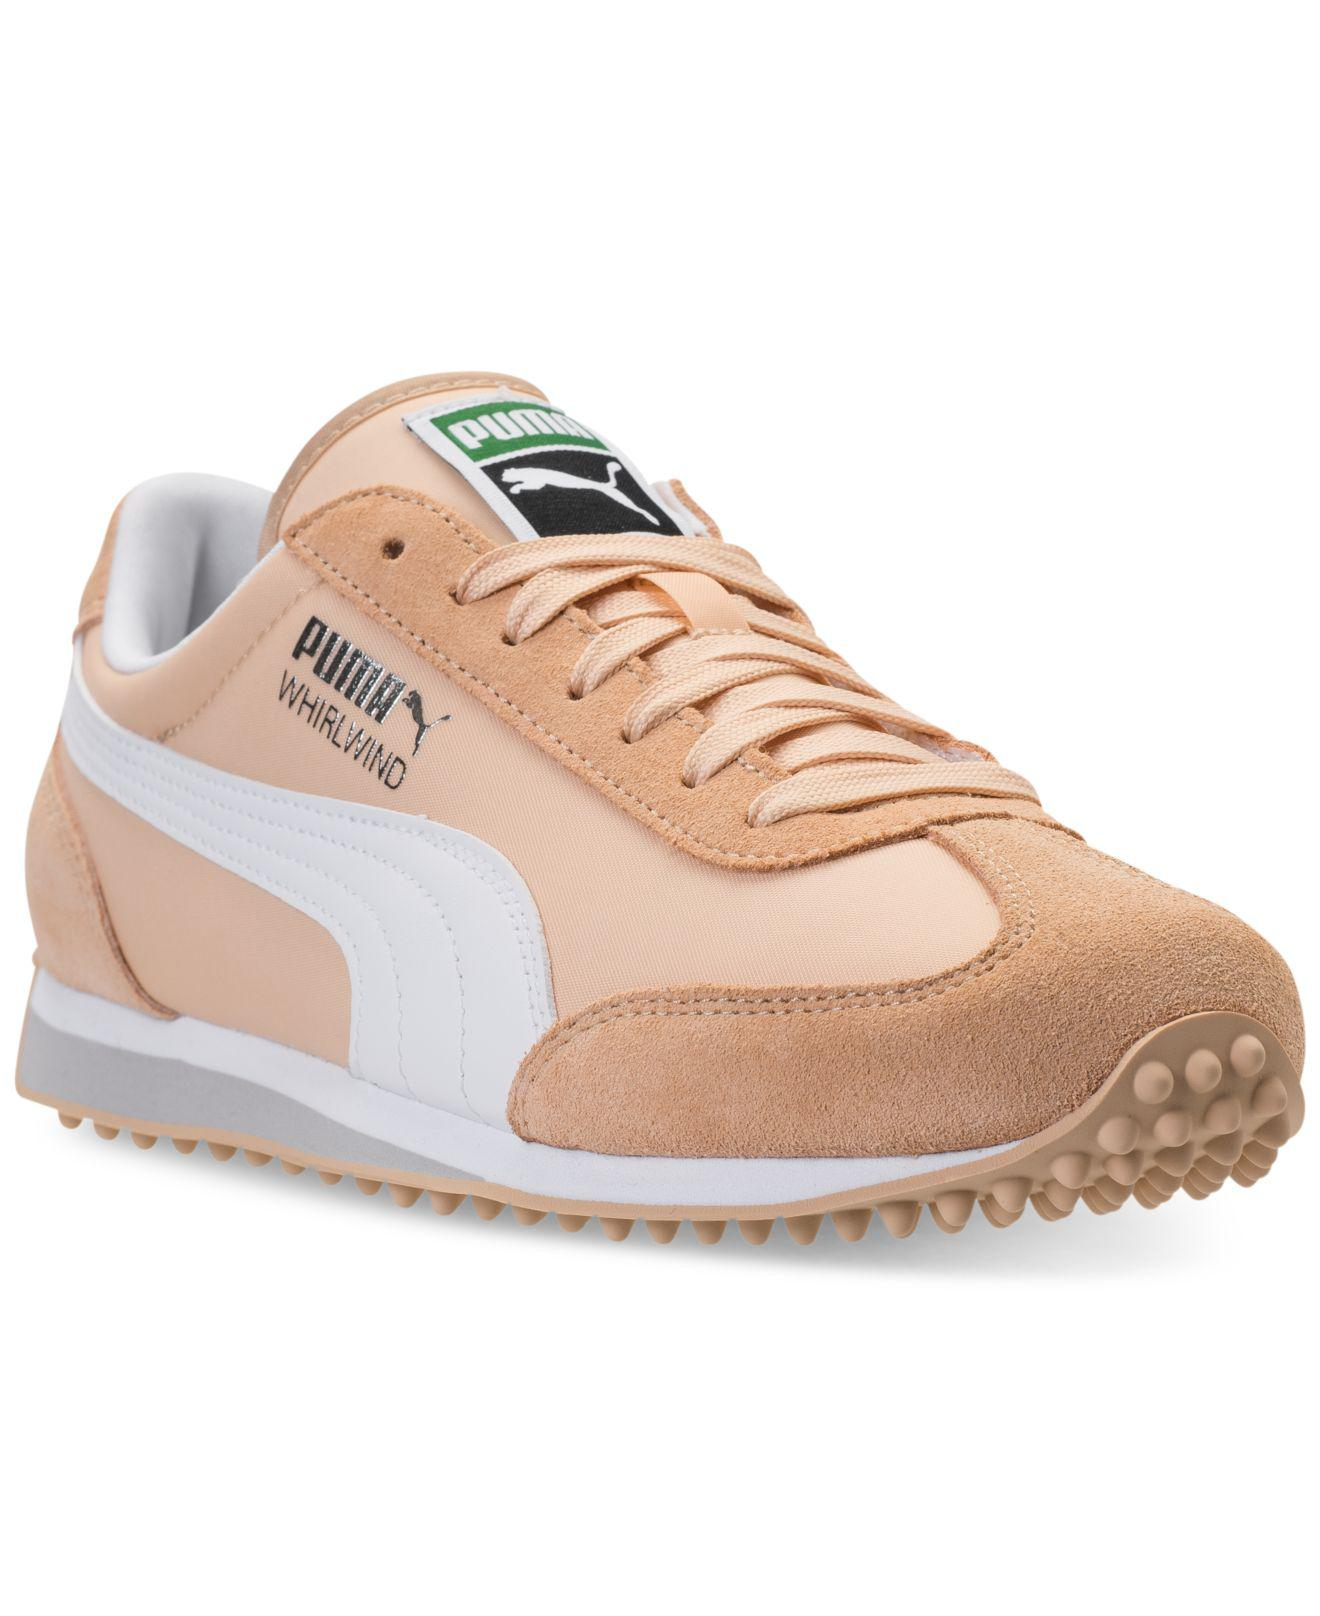 Lyst - Puma Men s Whirlwind Casual Sneakers From Finish Line for Men deaa639c6